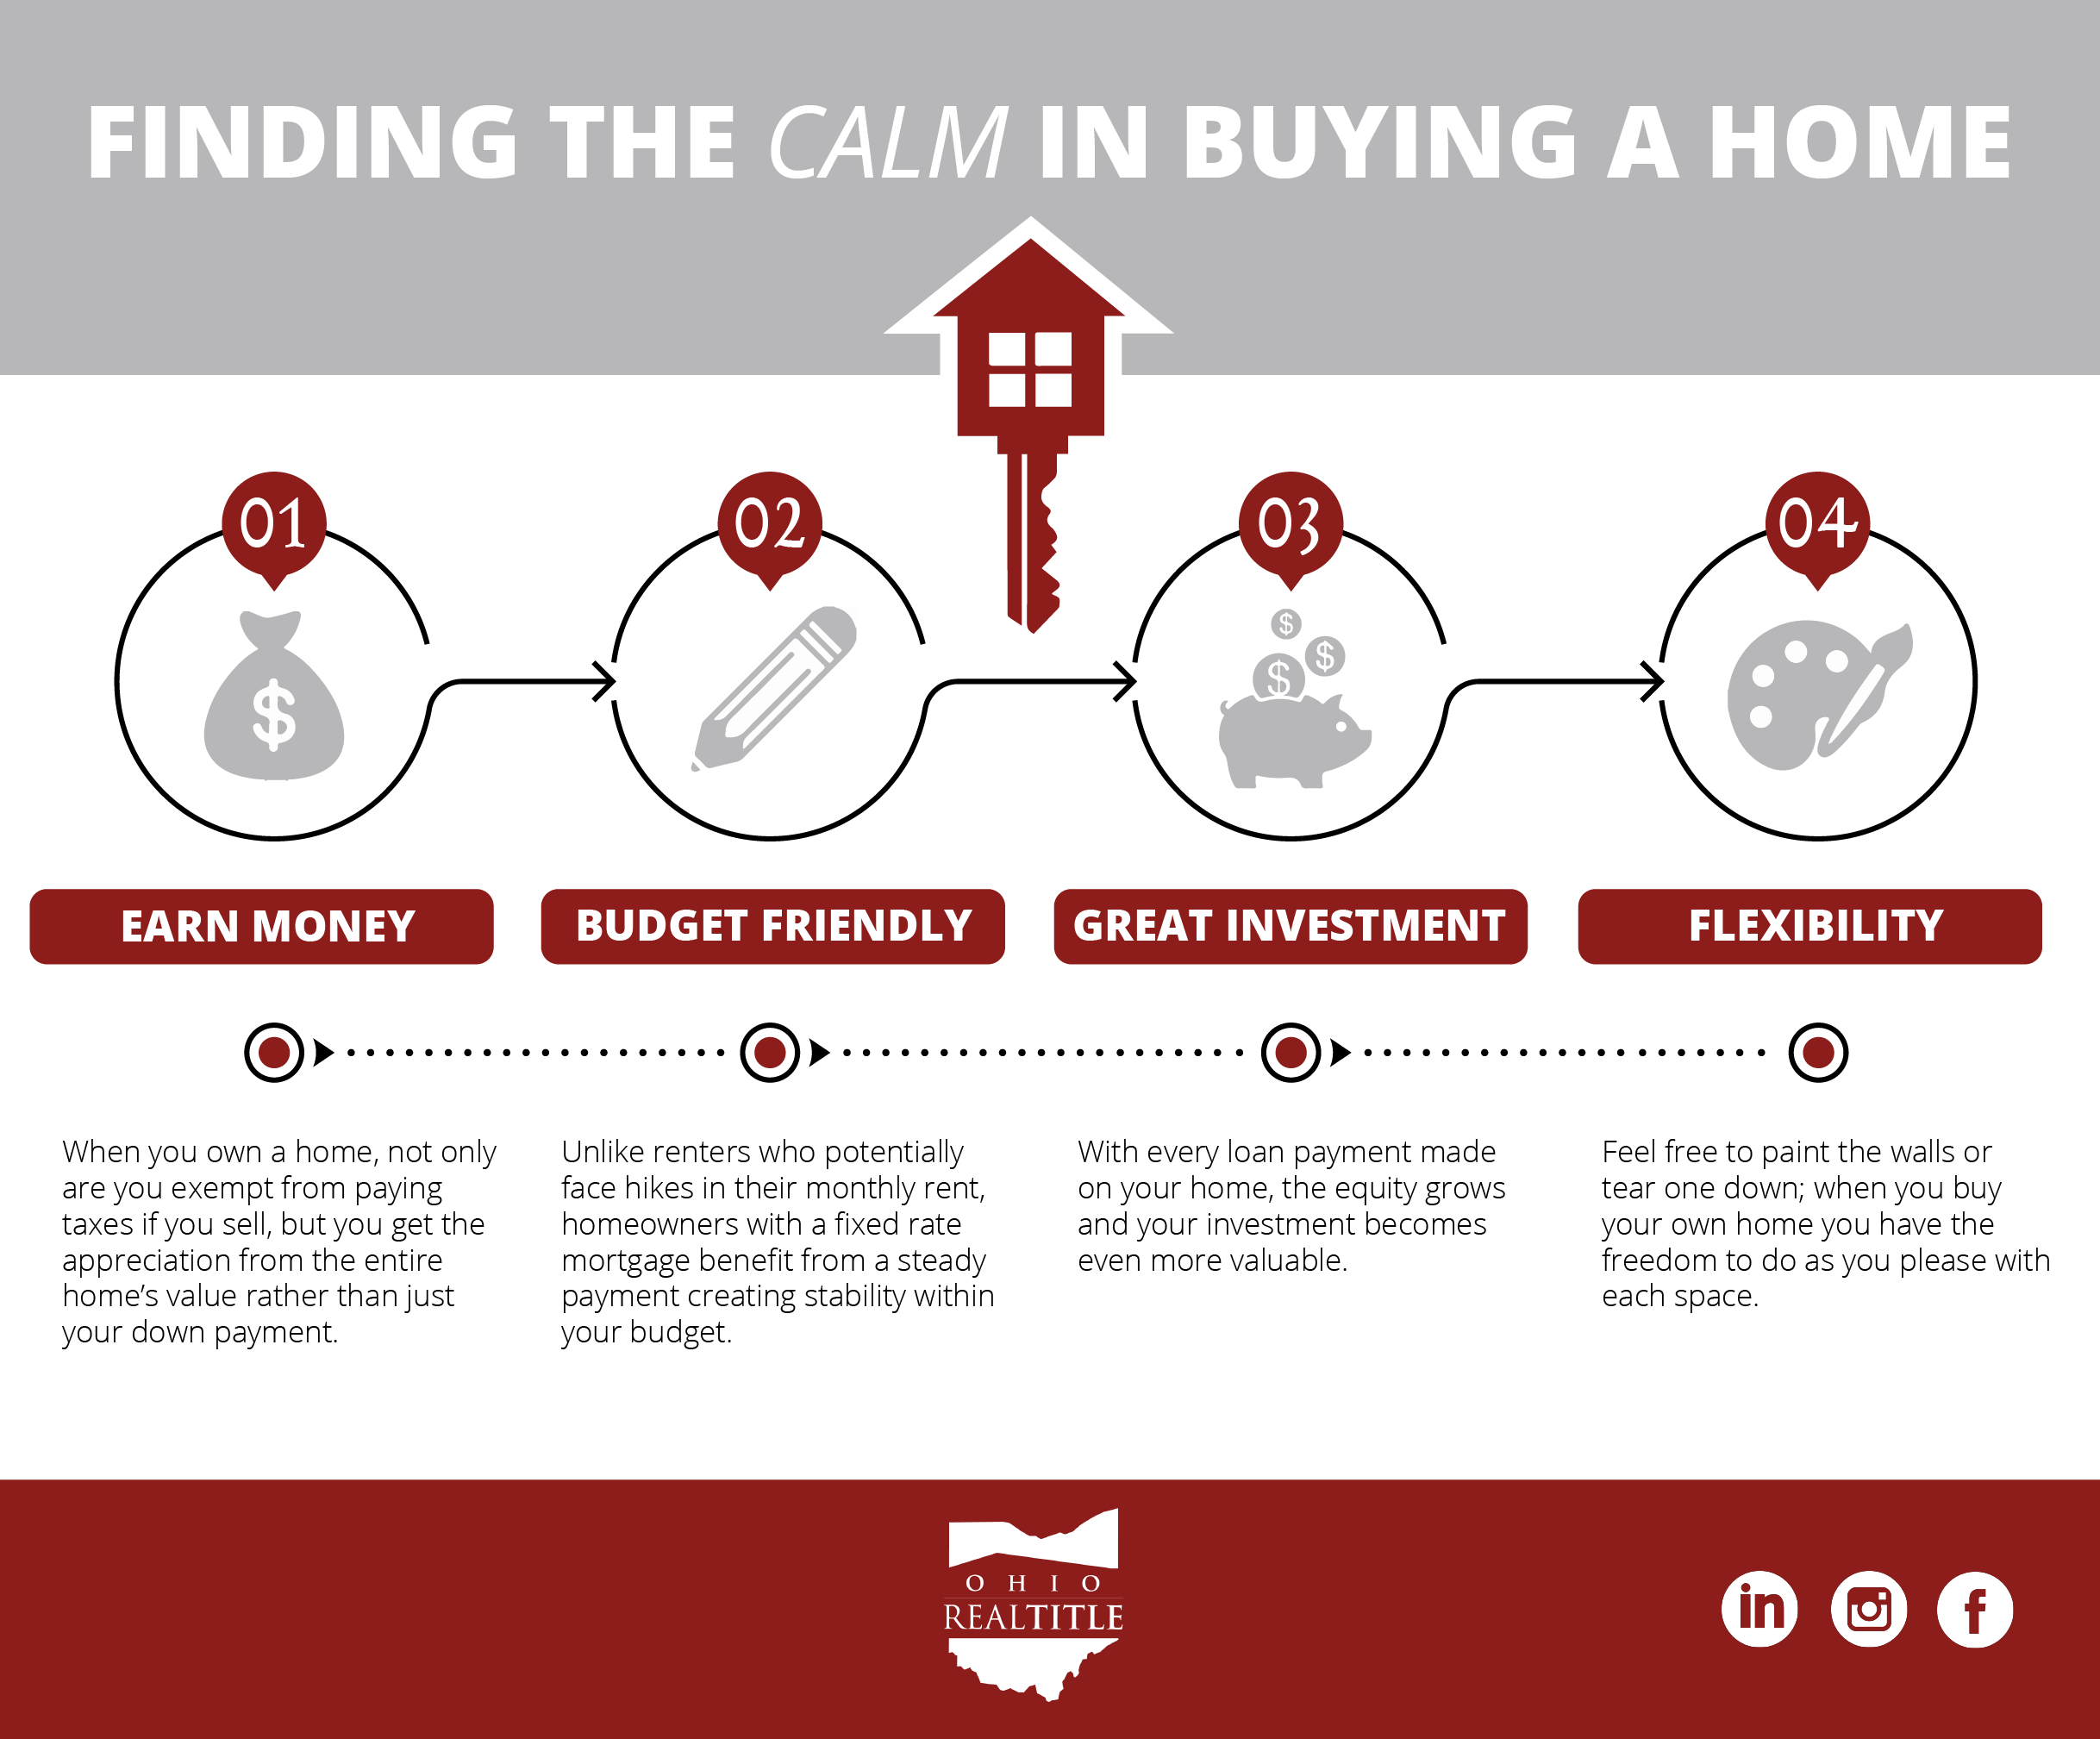 Finding the calm in buying a home infographic.